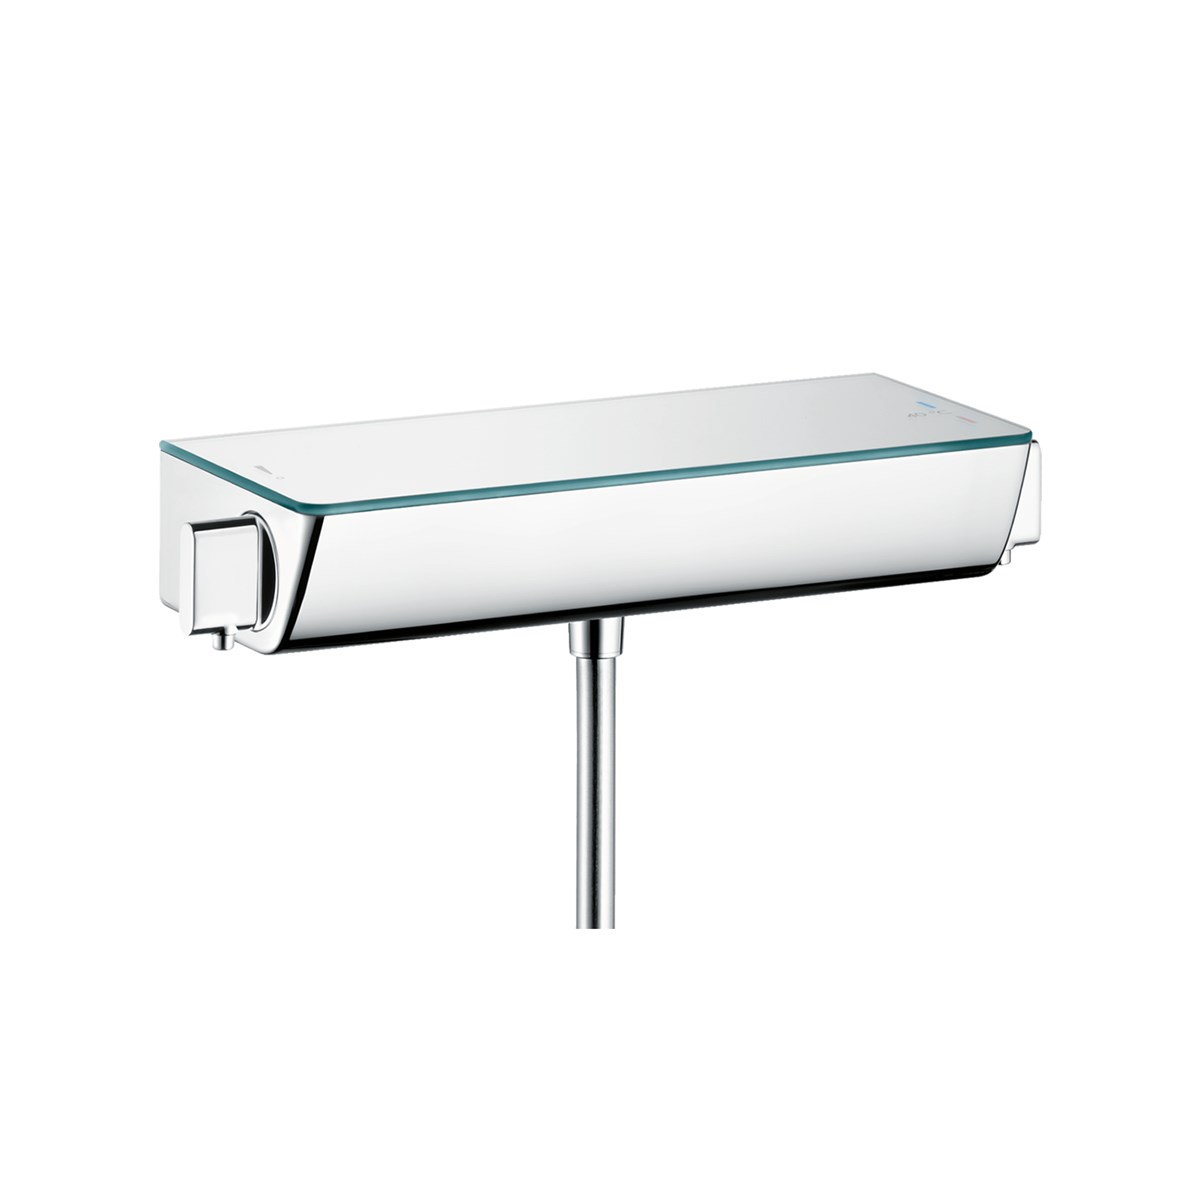 Hansgrohe-Ecostat-Select-Shower-Exposed-13161000-Matisse-1